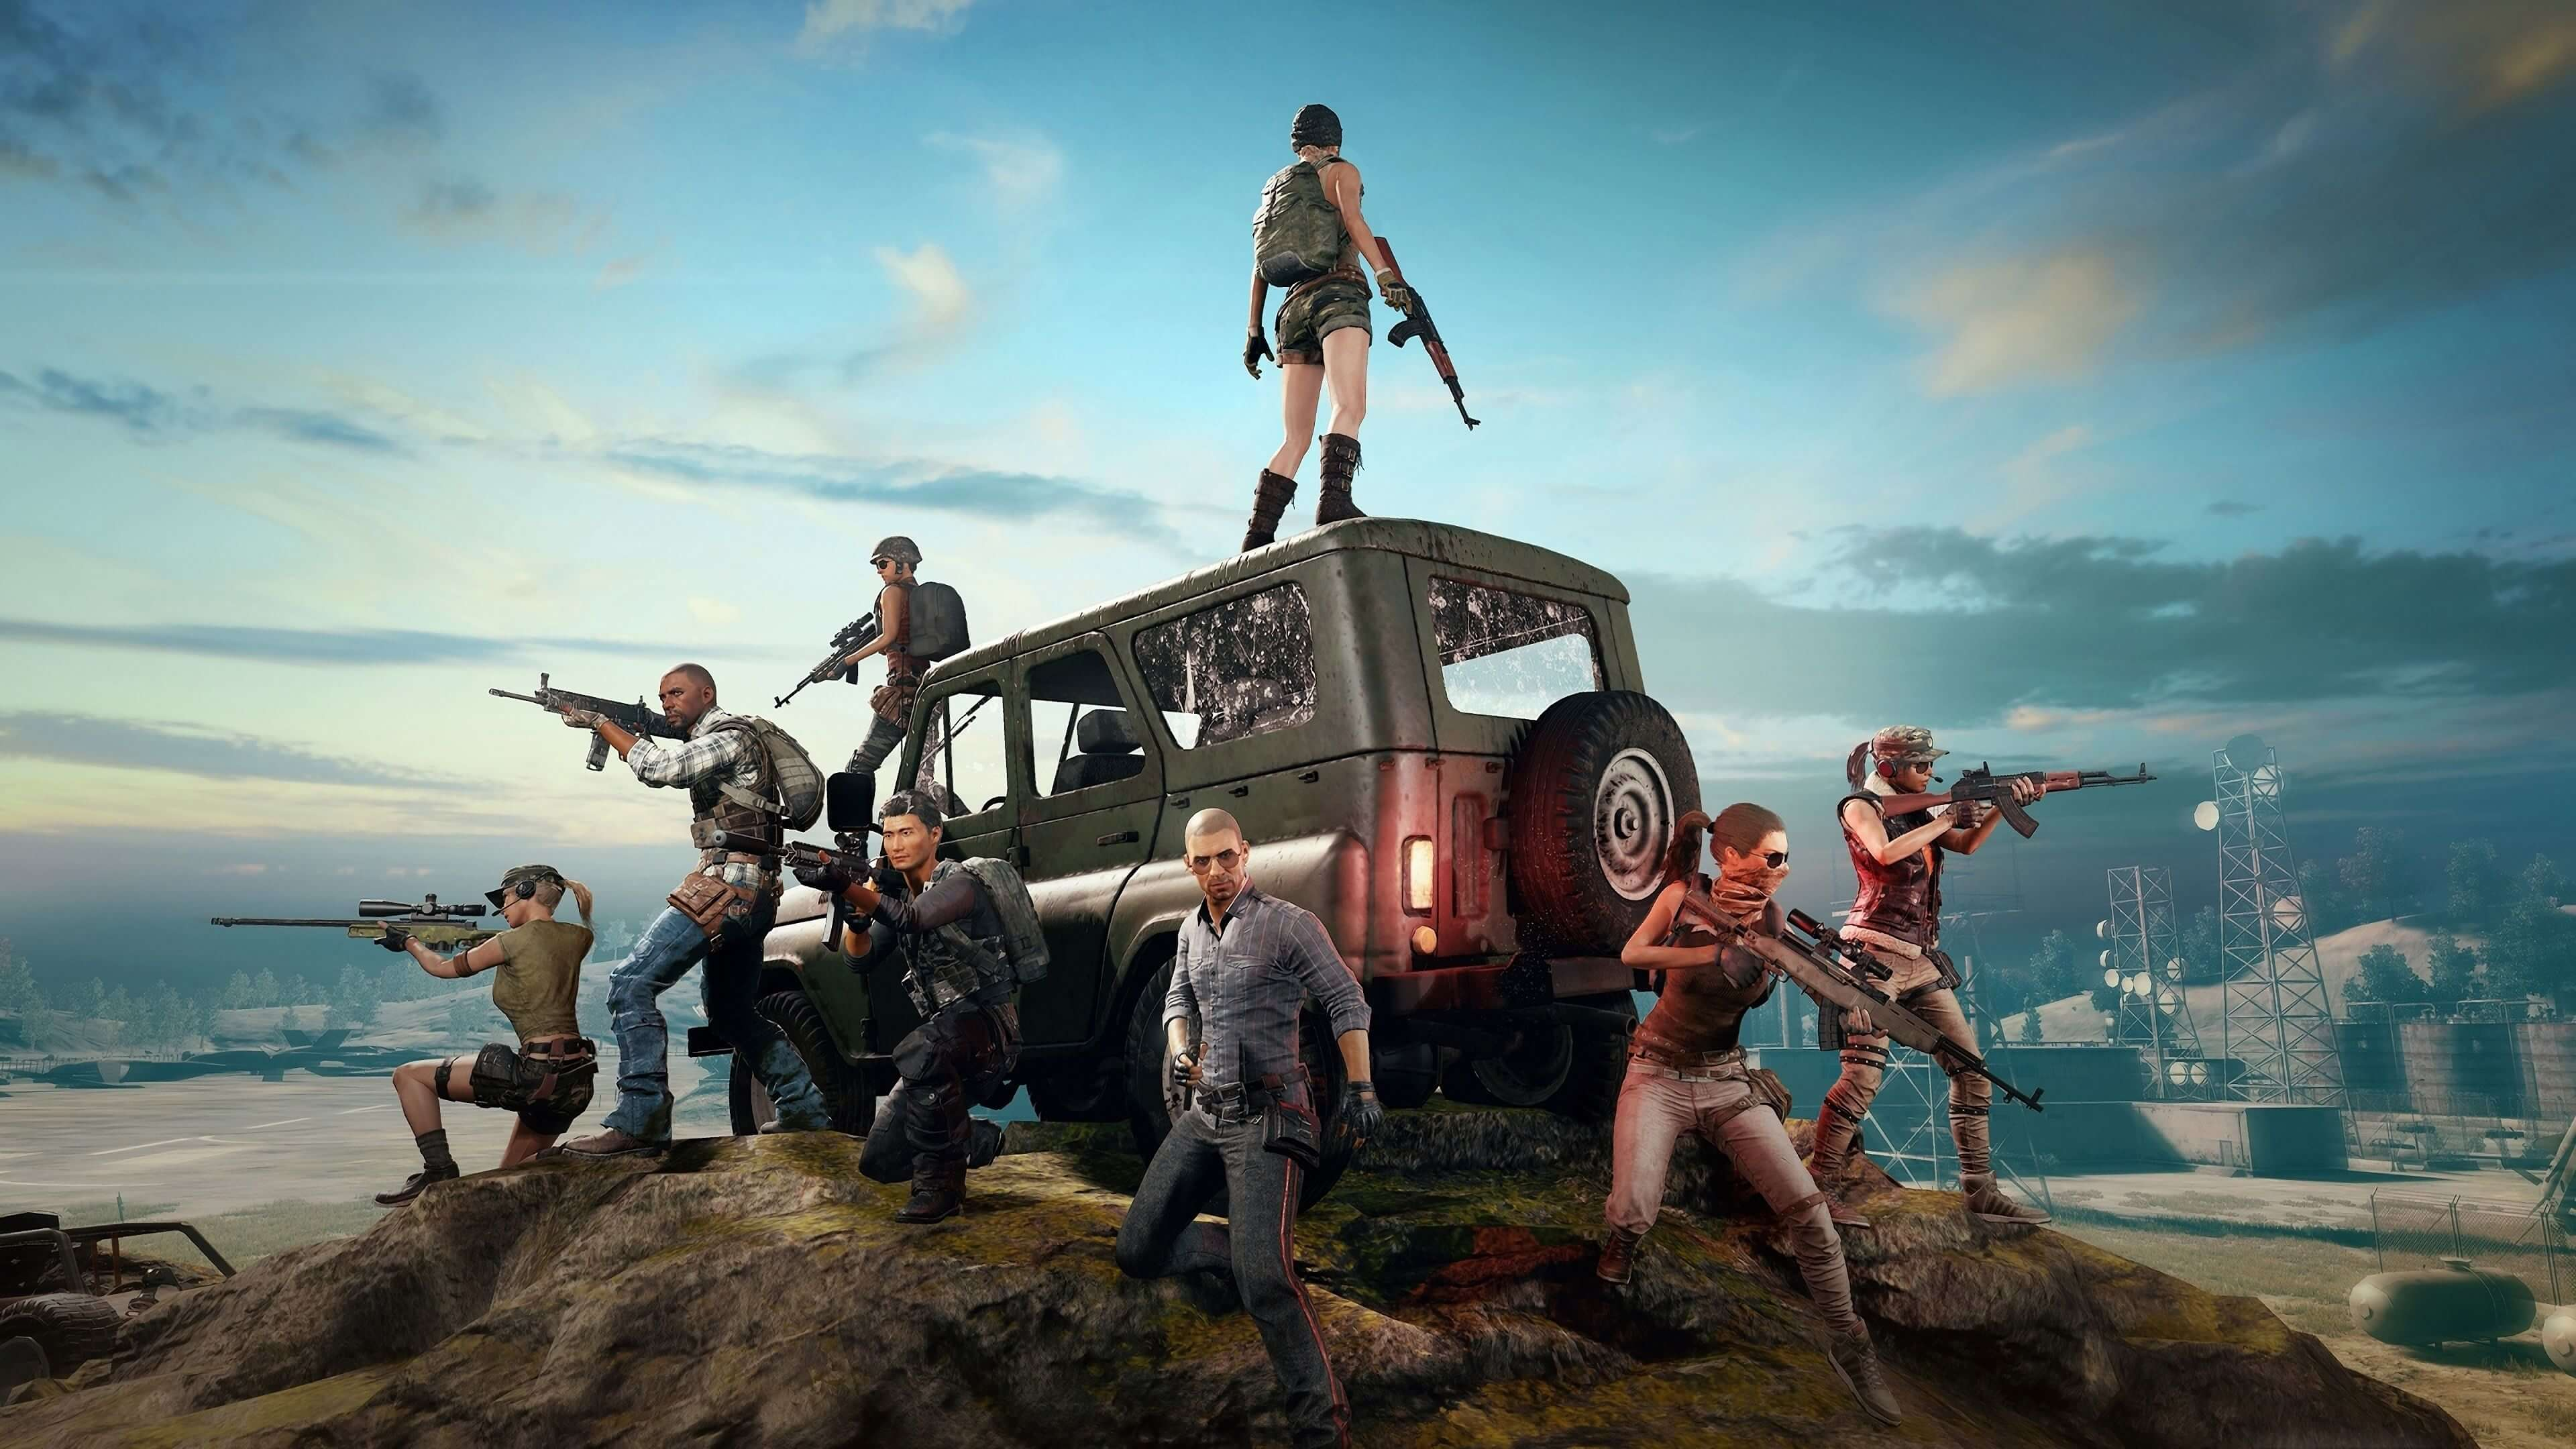 player unknown battlegrounds free download laptop